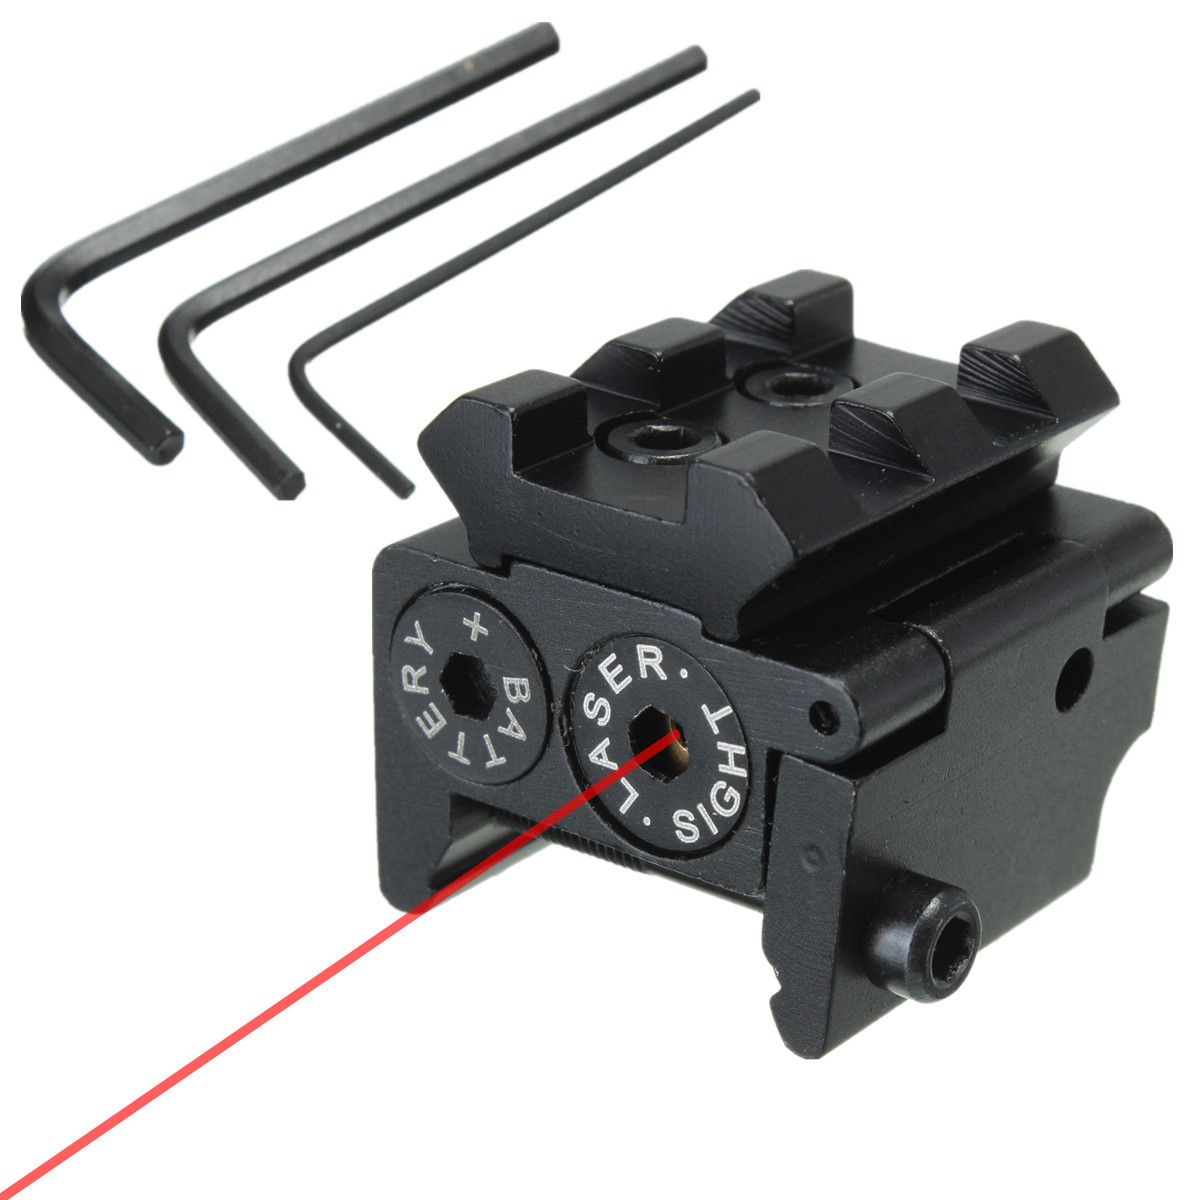 Mini Compact Tactical Red Dot Laser Bore Sight Scope With 20mm Picatinny Rail Mount tactical 4x32 rifle scope and 1x red dot sight scope for picatinny rail fir ar 15 ak 47 hunting shooting